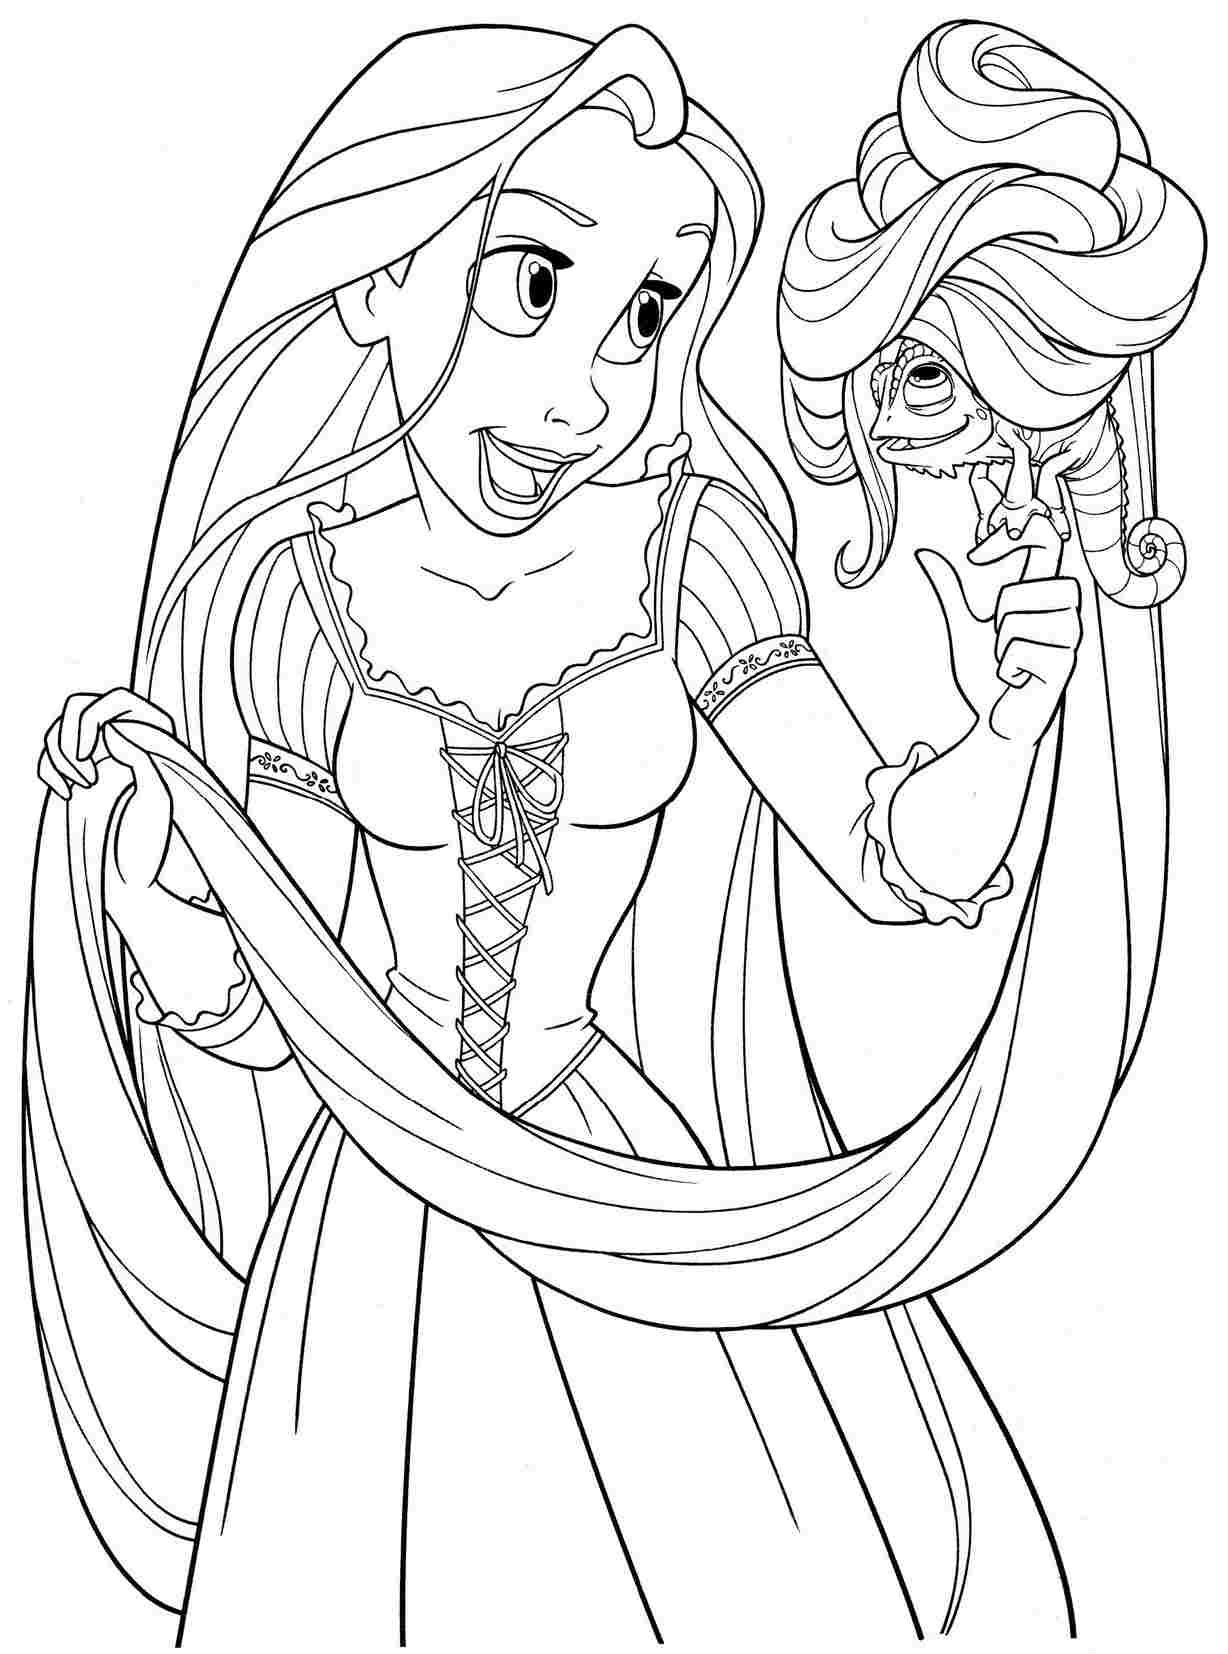 printable free colouring pages disney princess rapunzel for kids & boys |  Coloriage princesse, Coloriage princesse disney, Coloriage hello kitty